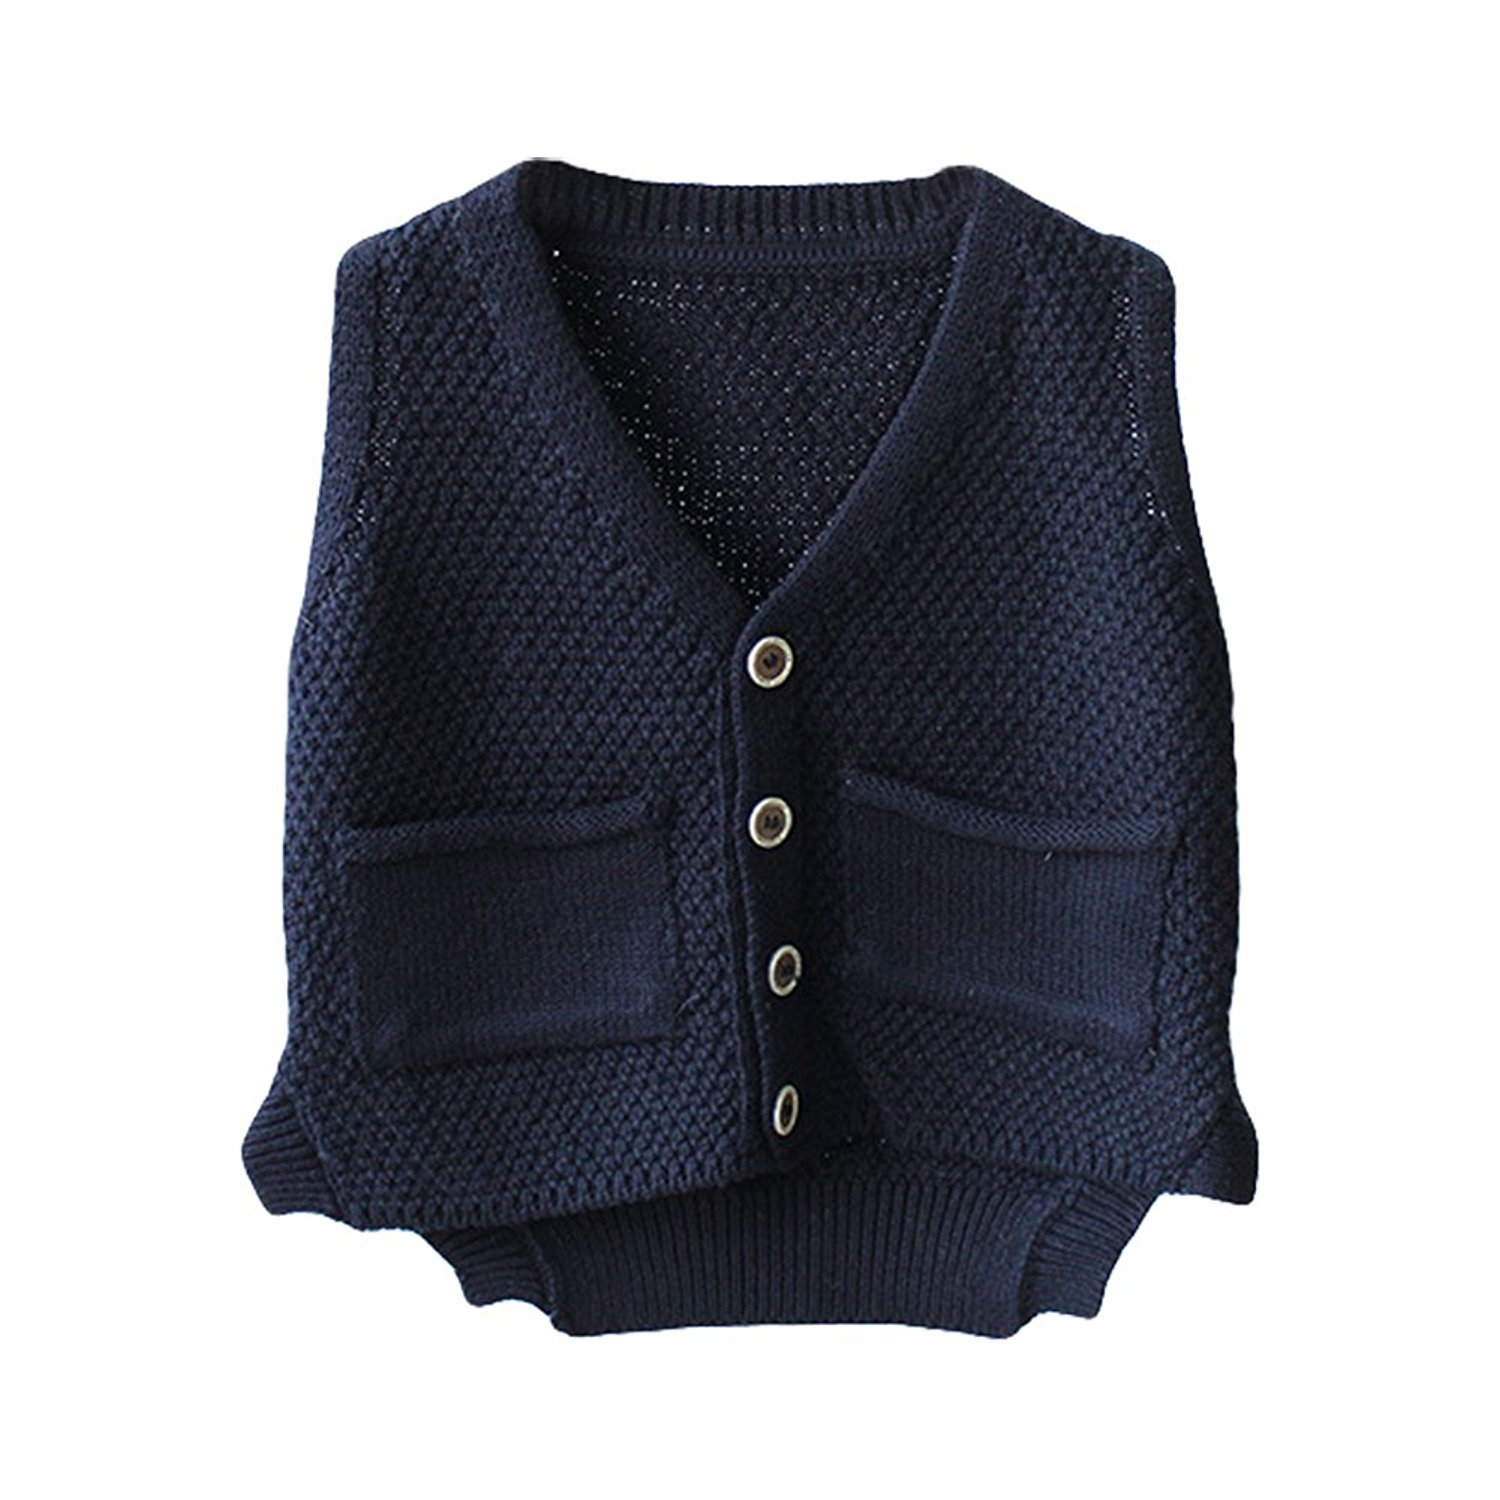 Unisex Baby Boys Girls Cute Knit Sweater Vest Kids V Neck Cardigan Waistcoat Jacket with Pockets